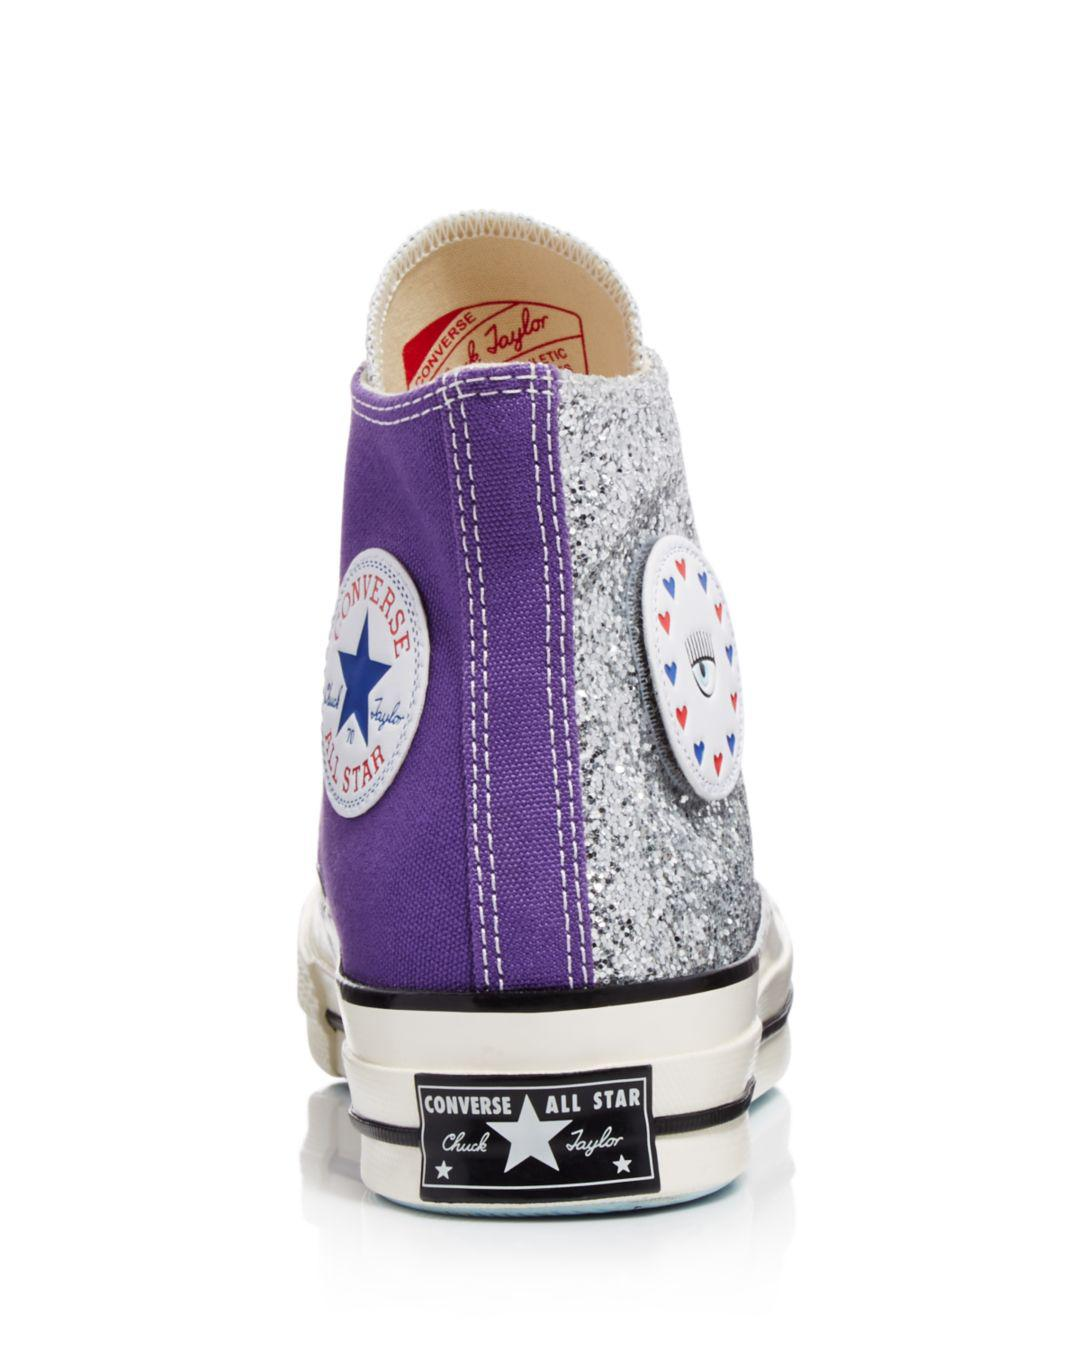 3f55c607e606 Lyst - Converse X Chiara Ferragni Women s Chuck Taylor Tillands Glitter  High Top Sneakers in Purple